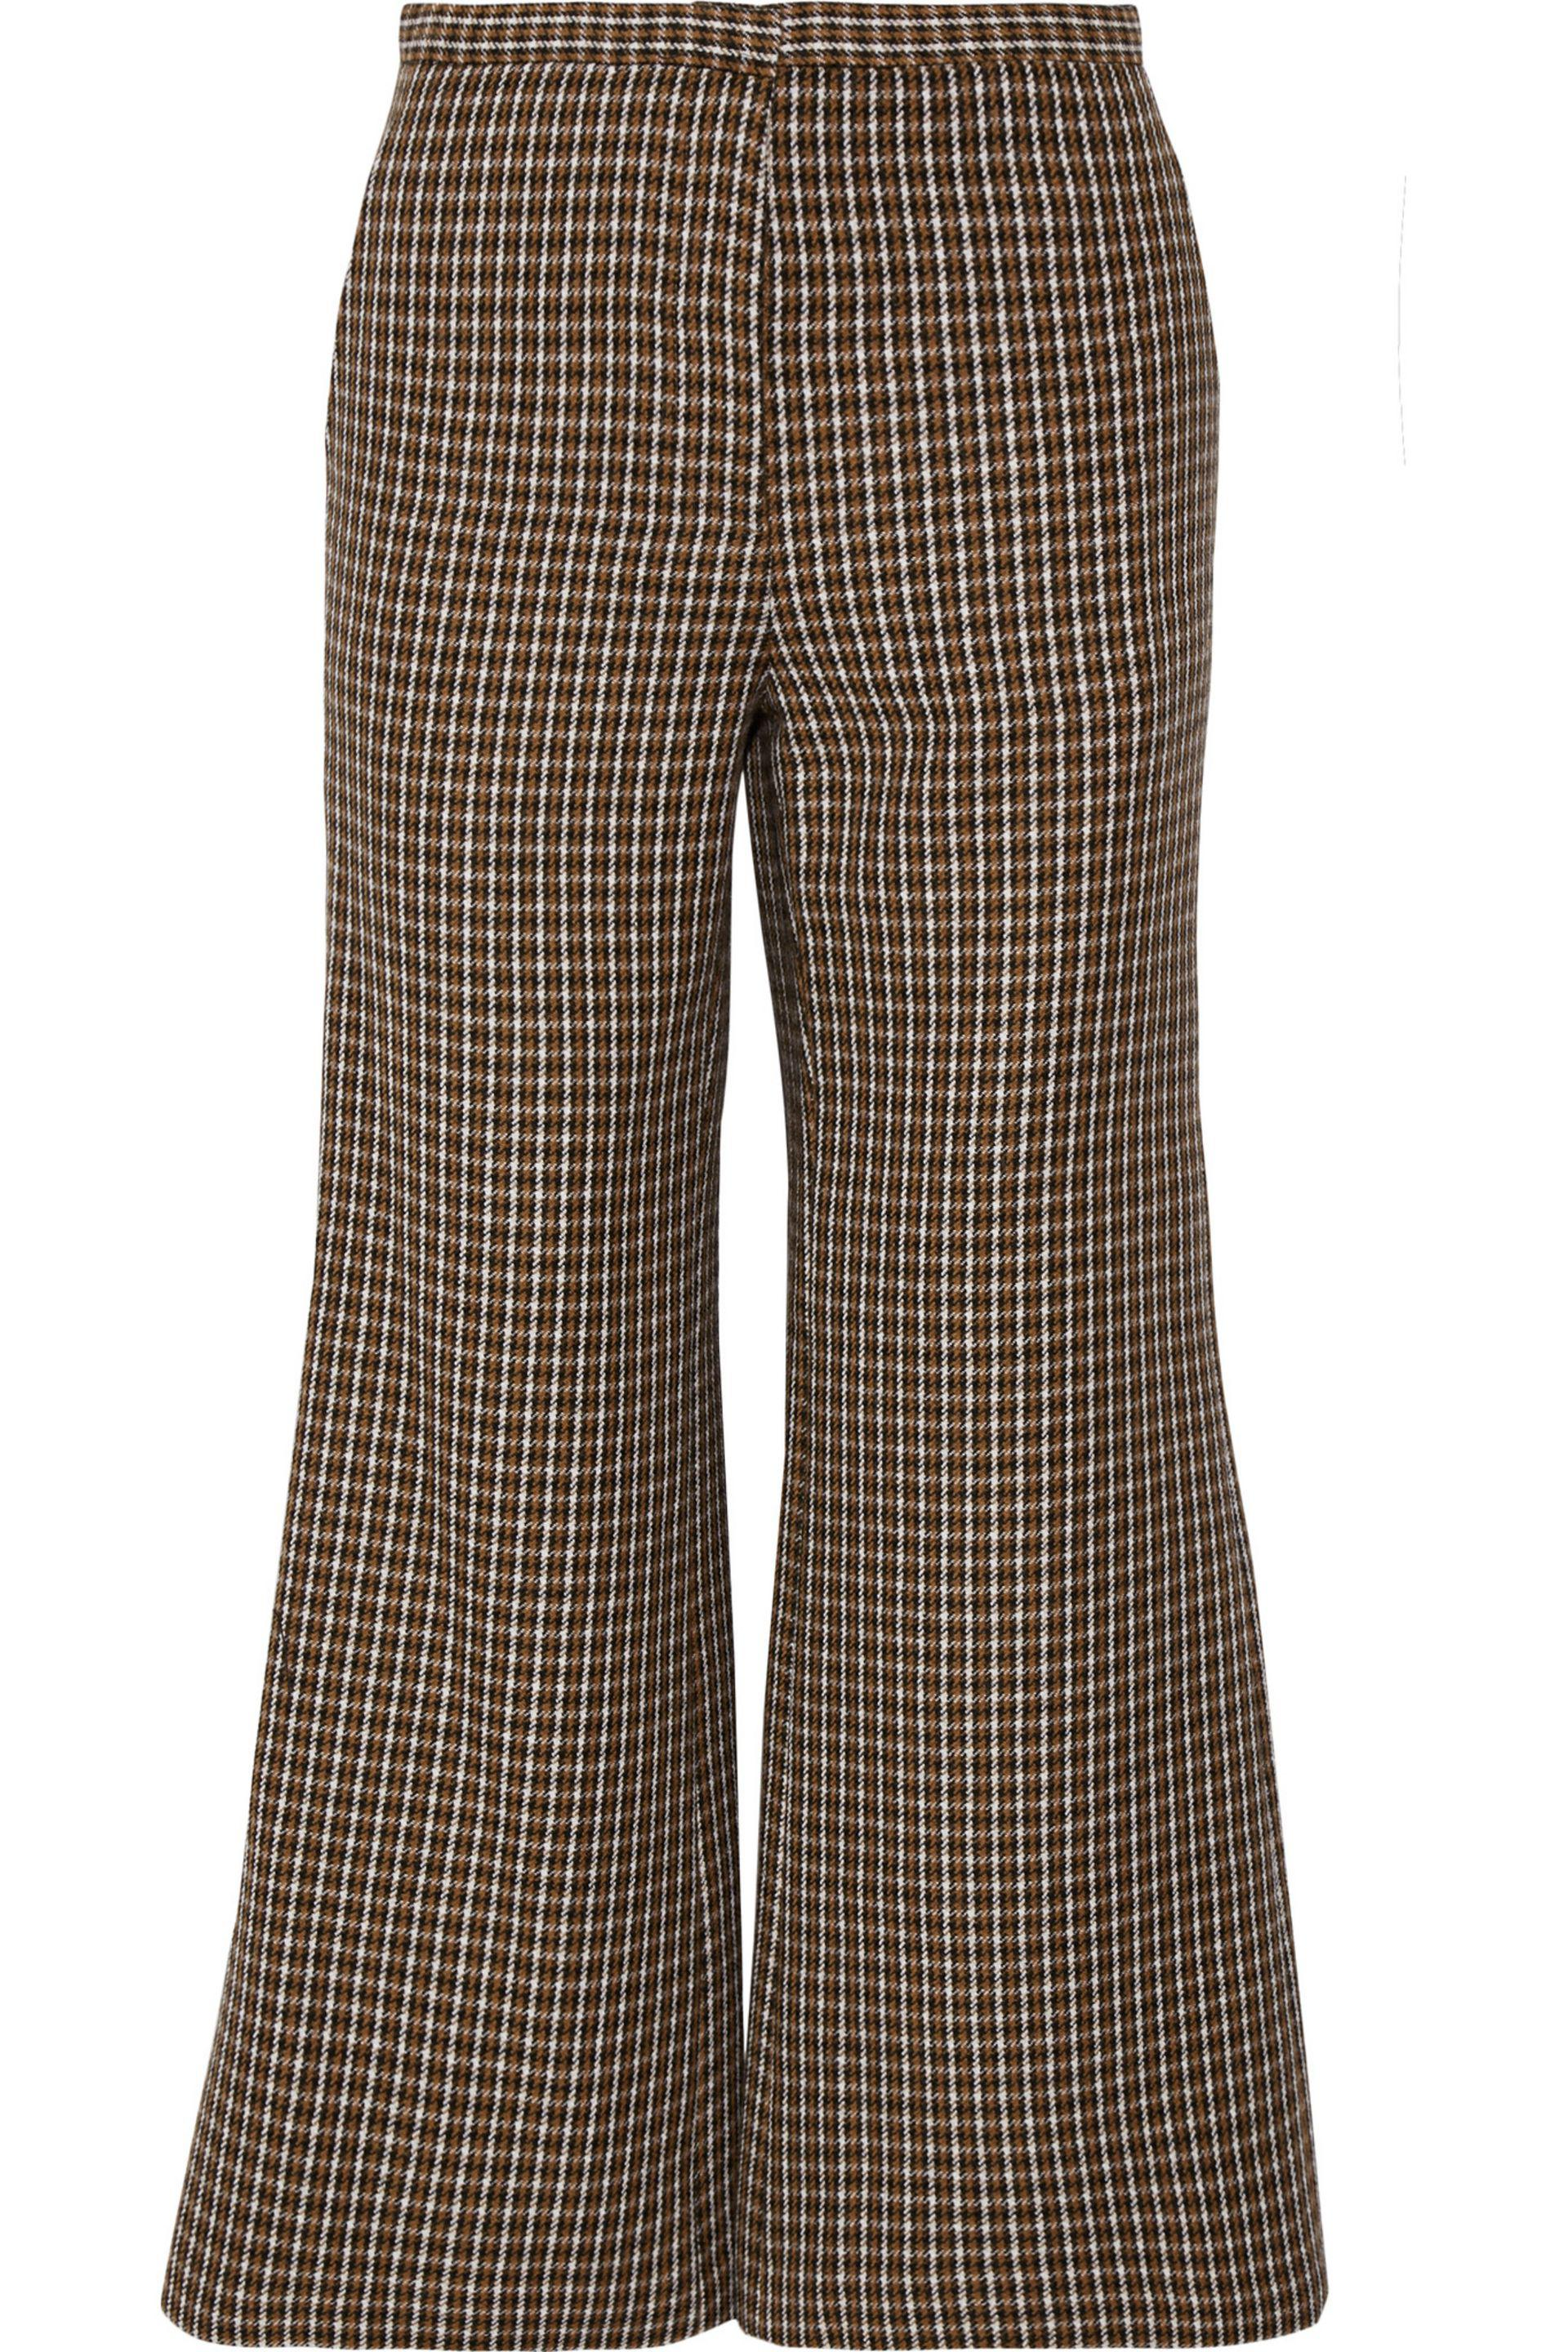 Rosetta Getty. Women's Brown Cropped Houndstooth Wool Flared Trousers